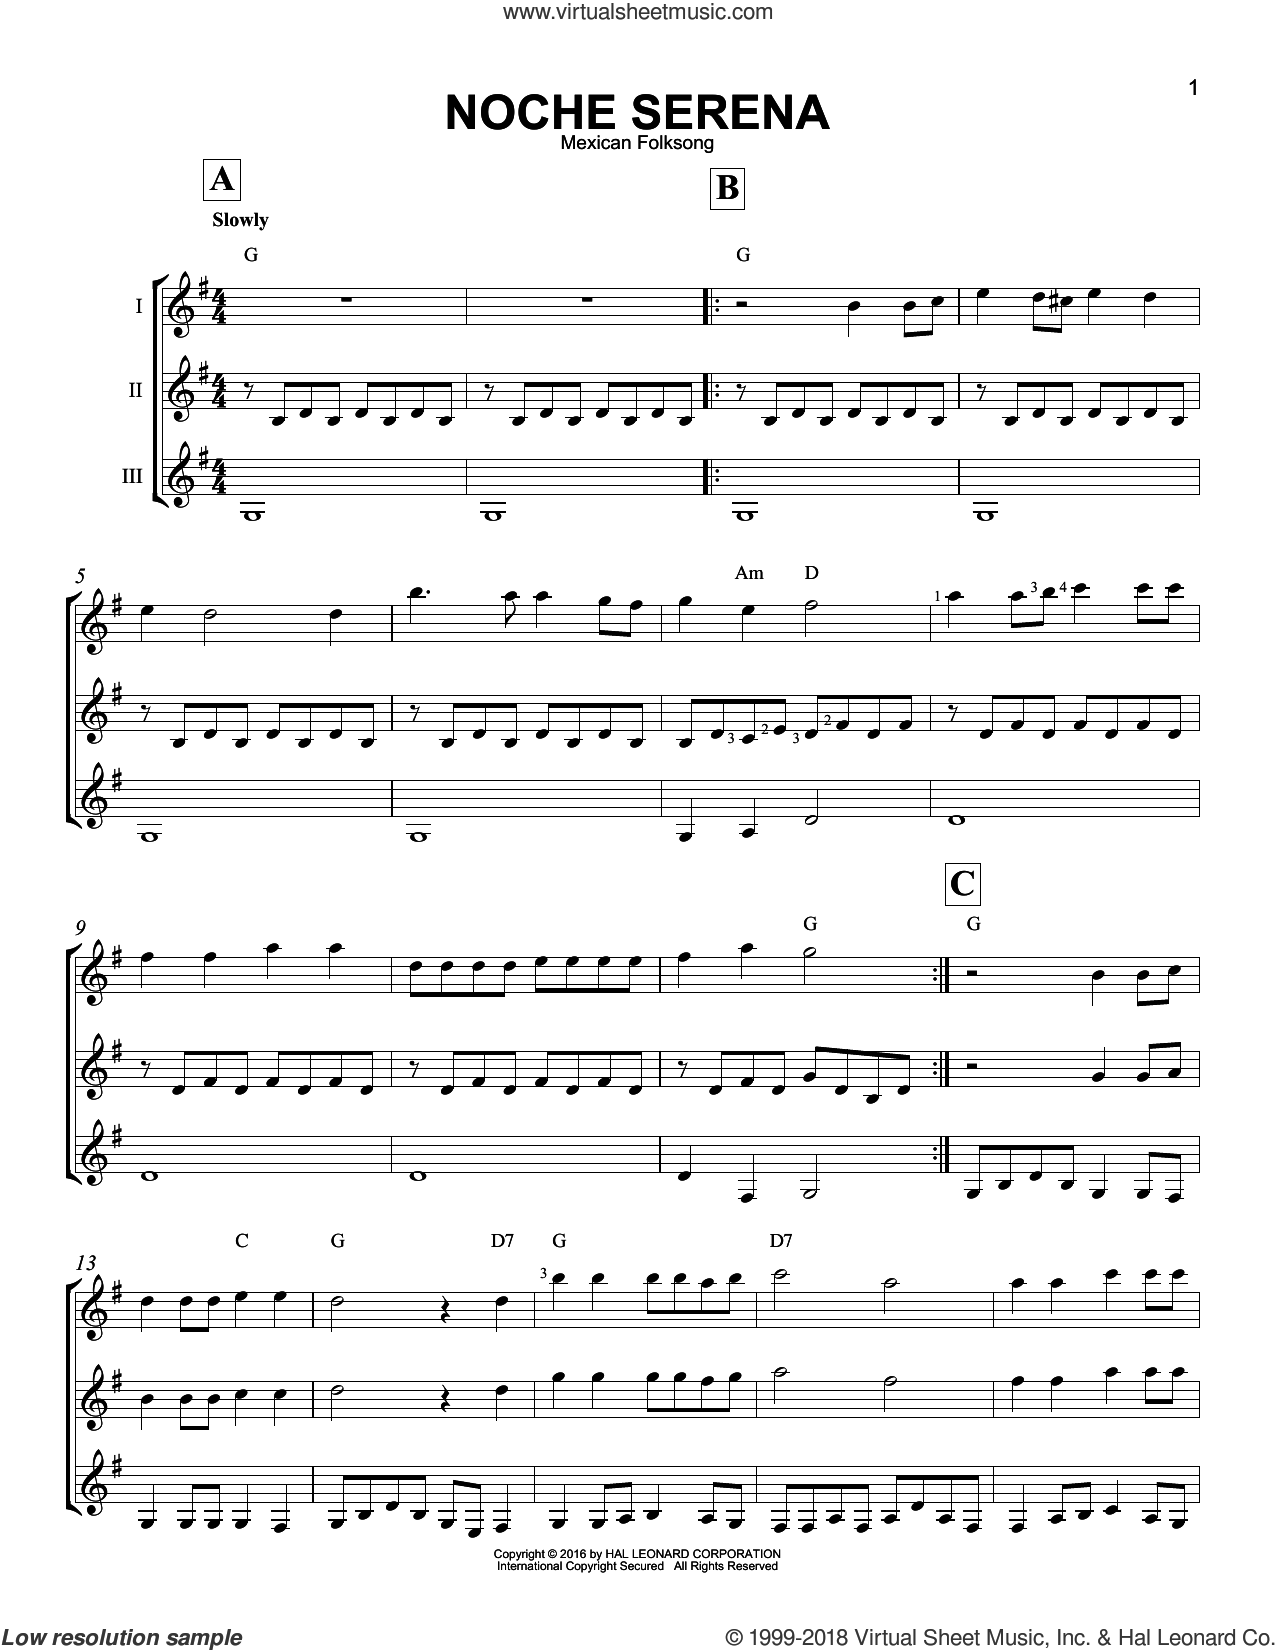 Noche Serena sheet music for guitar ensemble by Mexican Folksong. Score Image Preview.